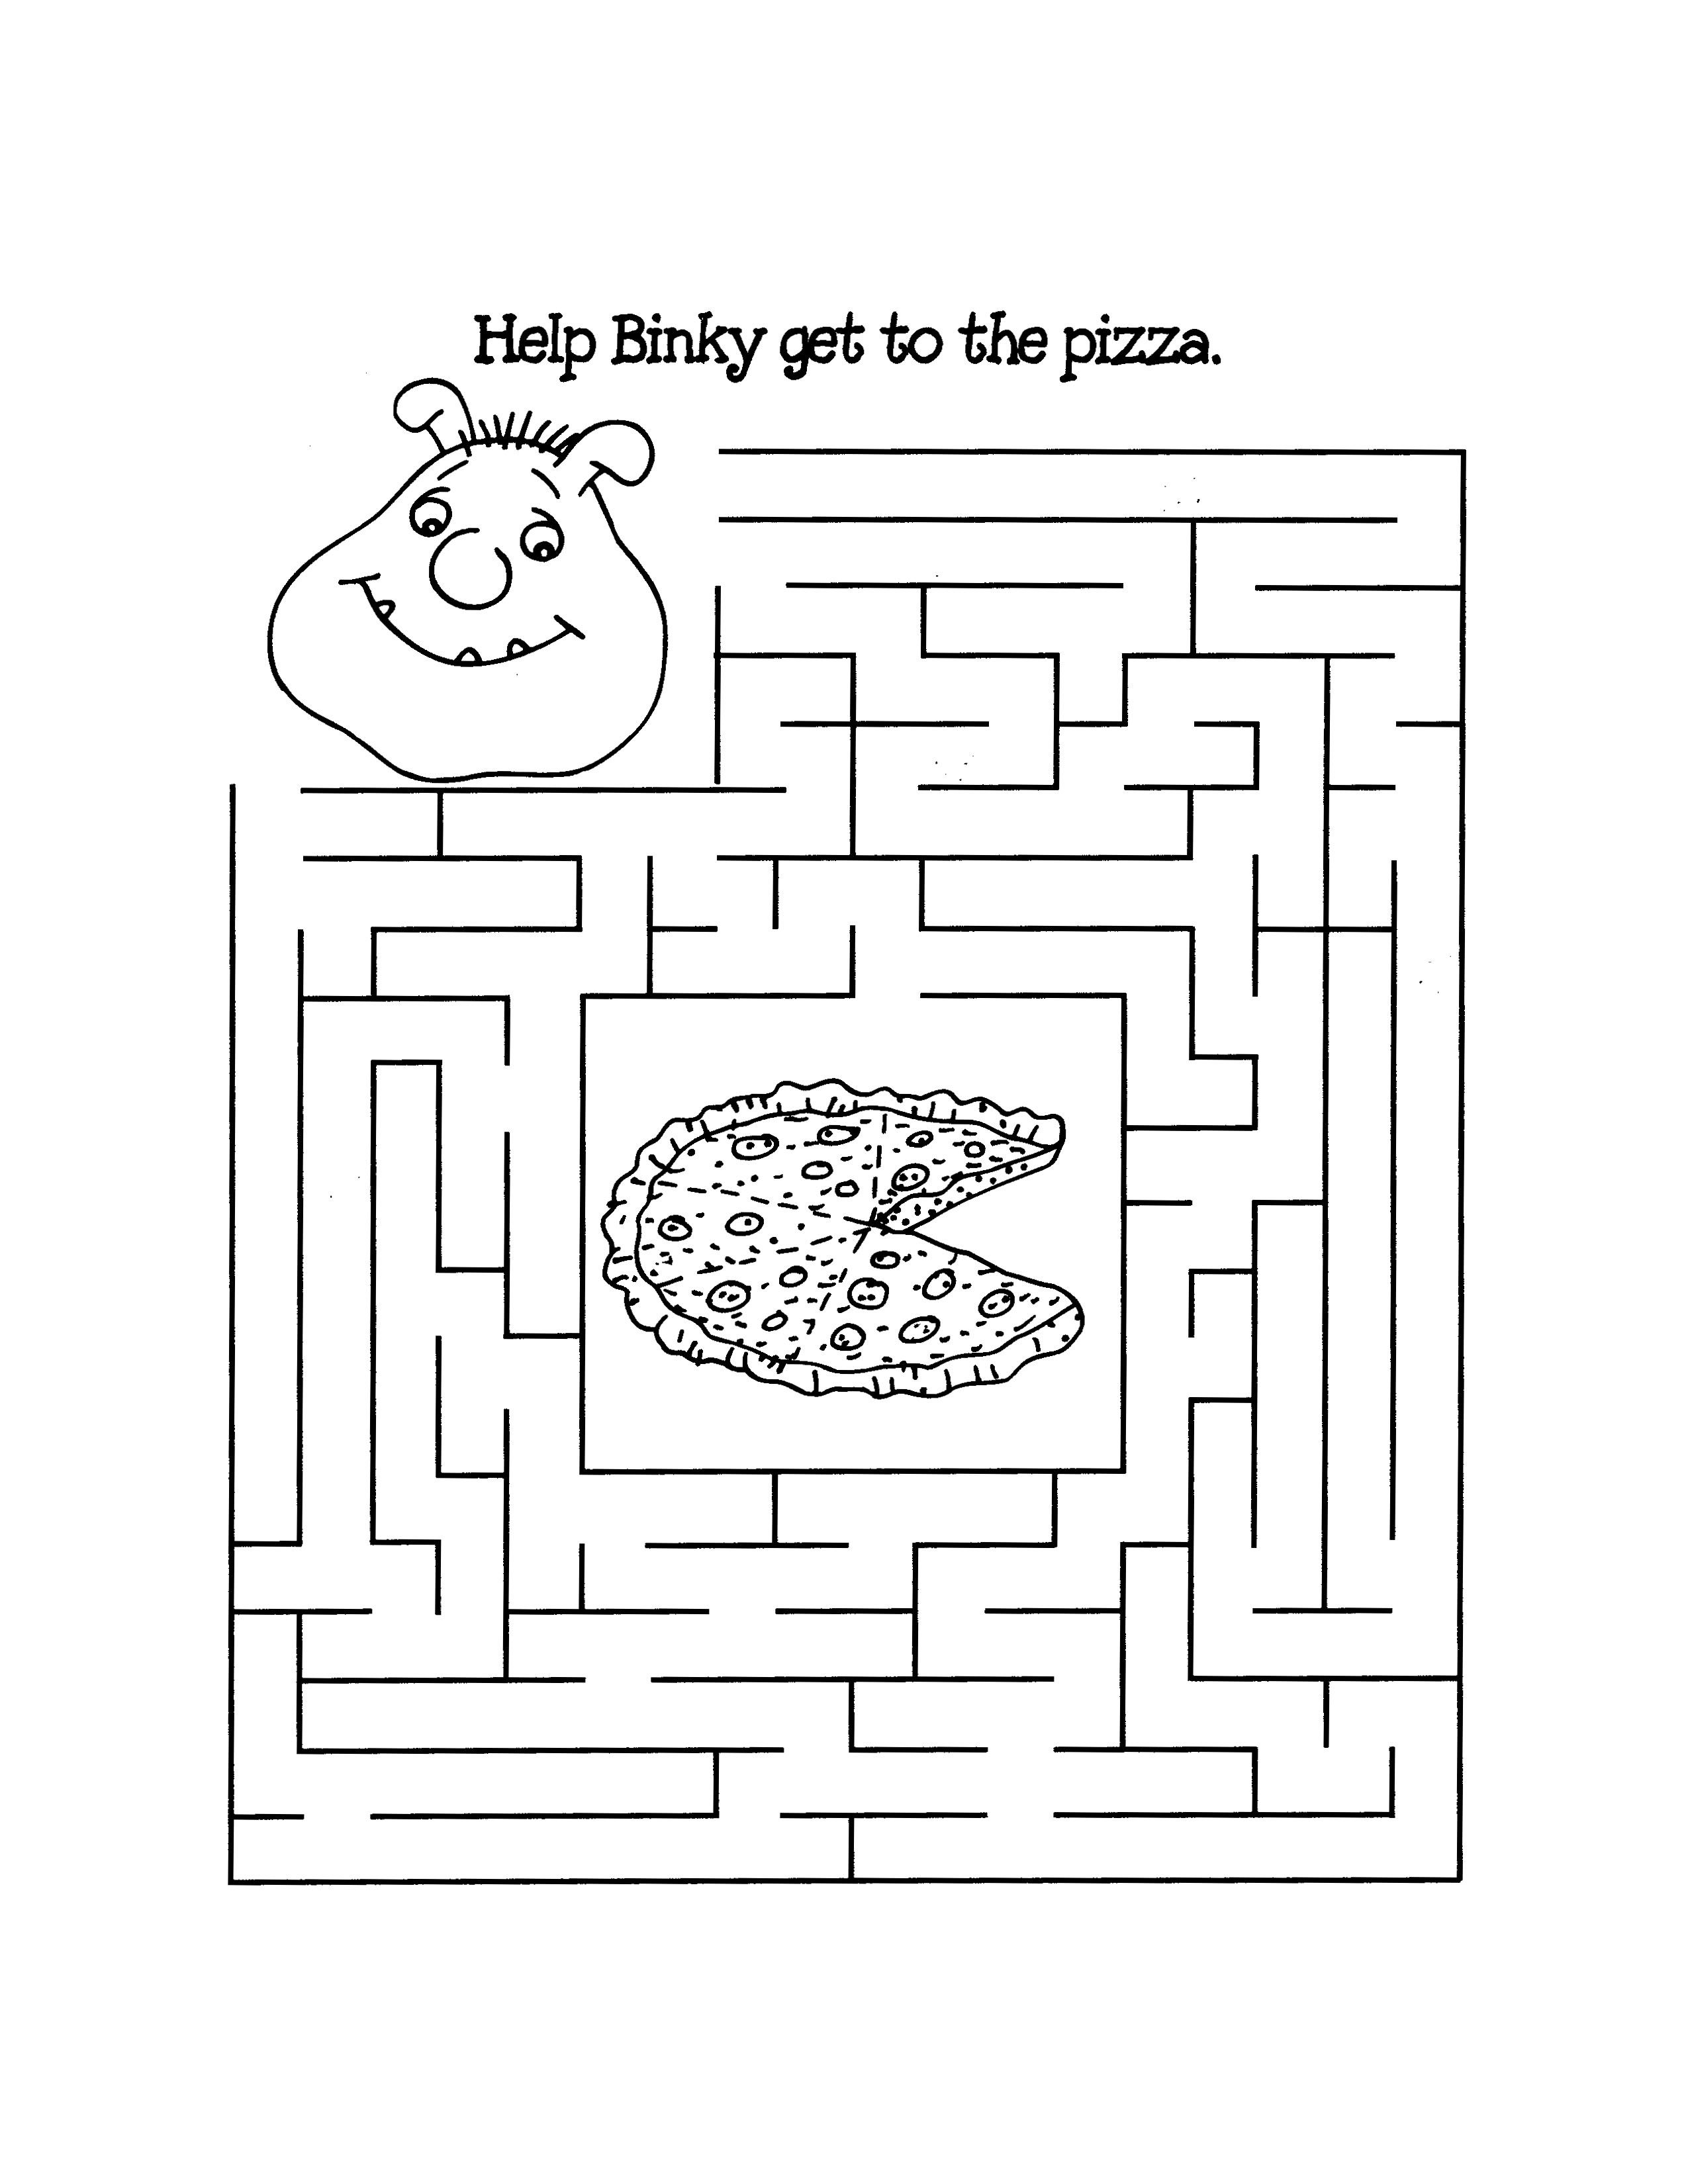 Pizza Maze For Kids Mazes For Kids Printable Mazes Puzzles For Kids [ 3300 x 2550 Pixel ]